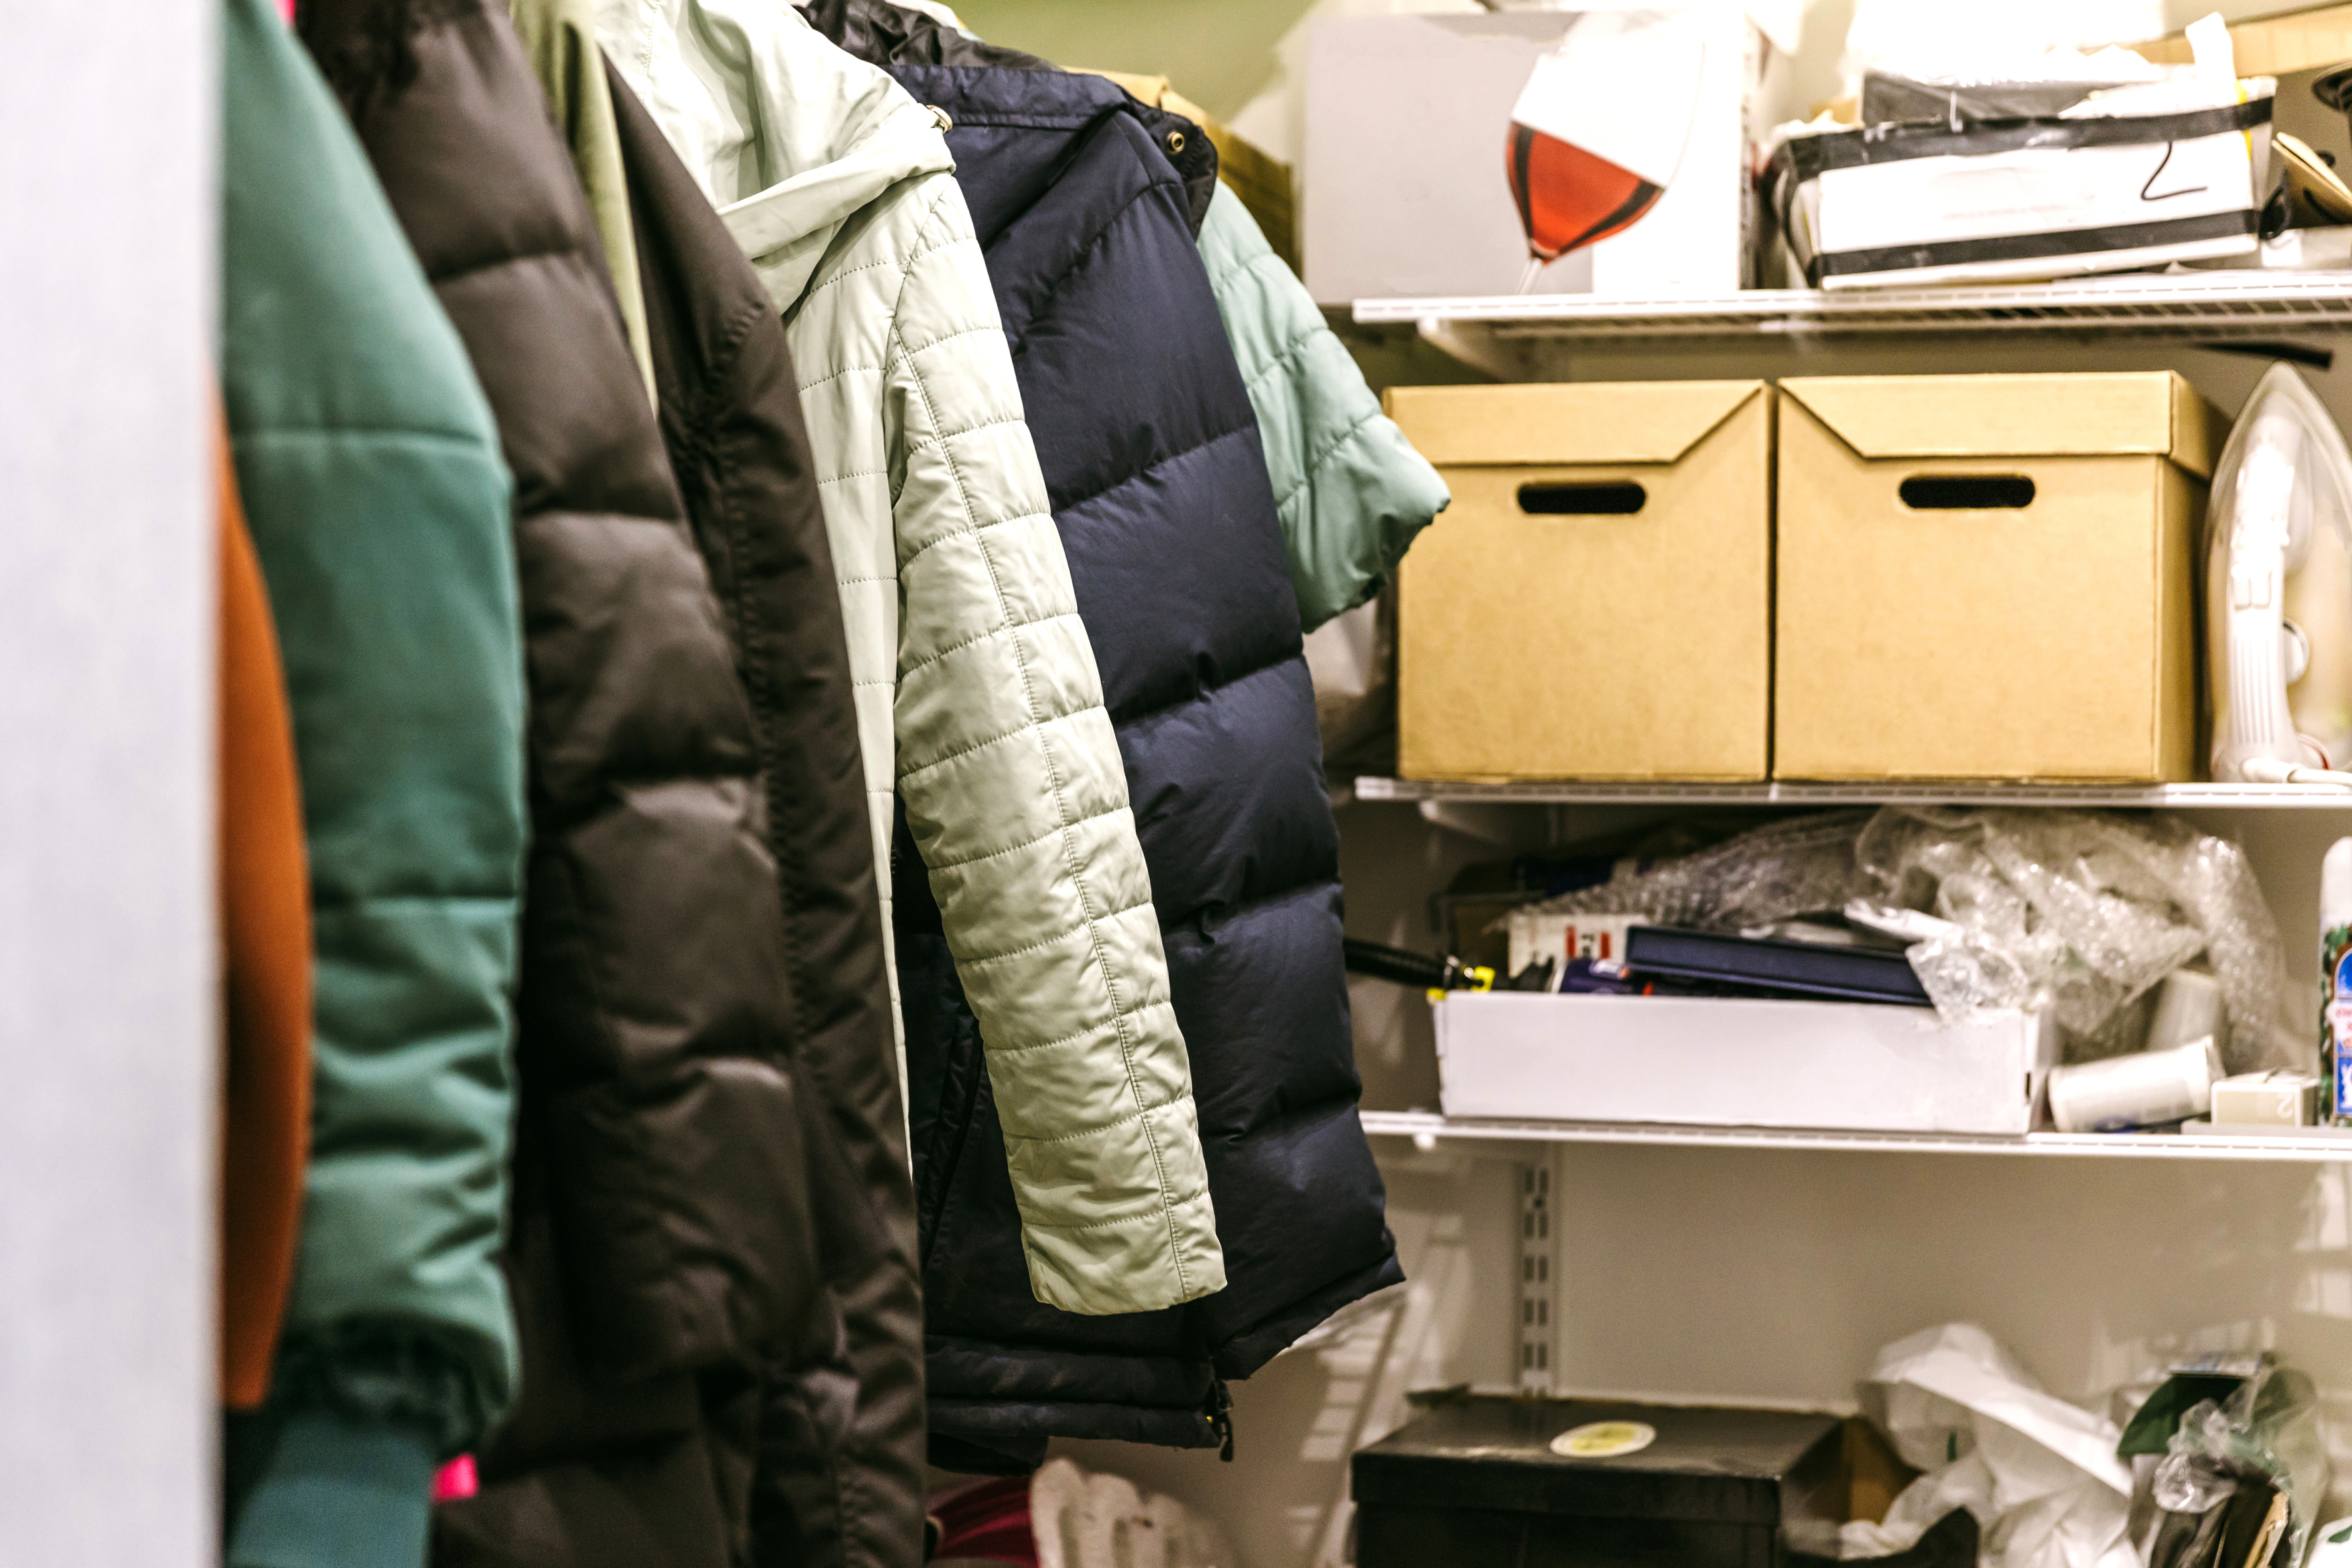 A somewhat cluttered closet with winter coats hanging up and boxes and other things crammed onto shelves at the end.